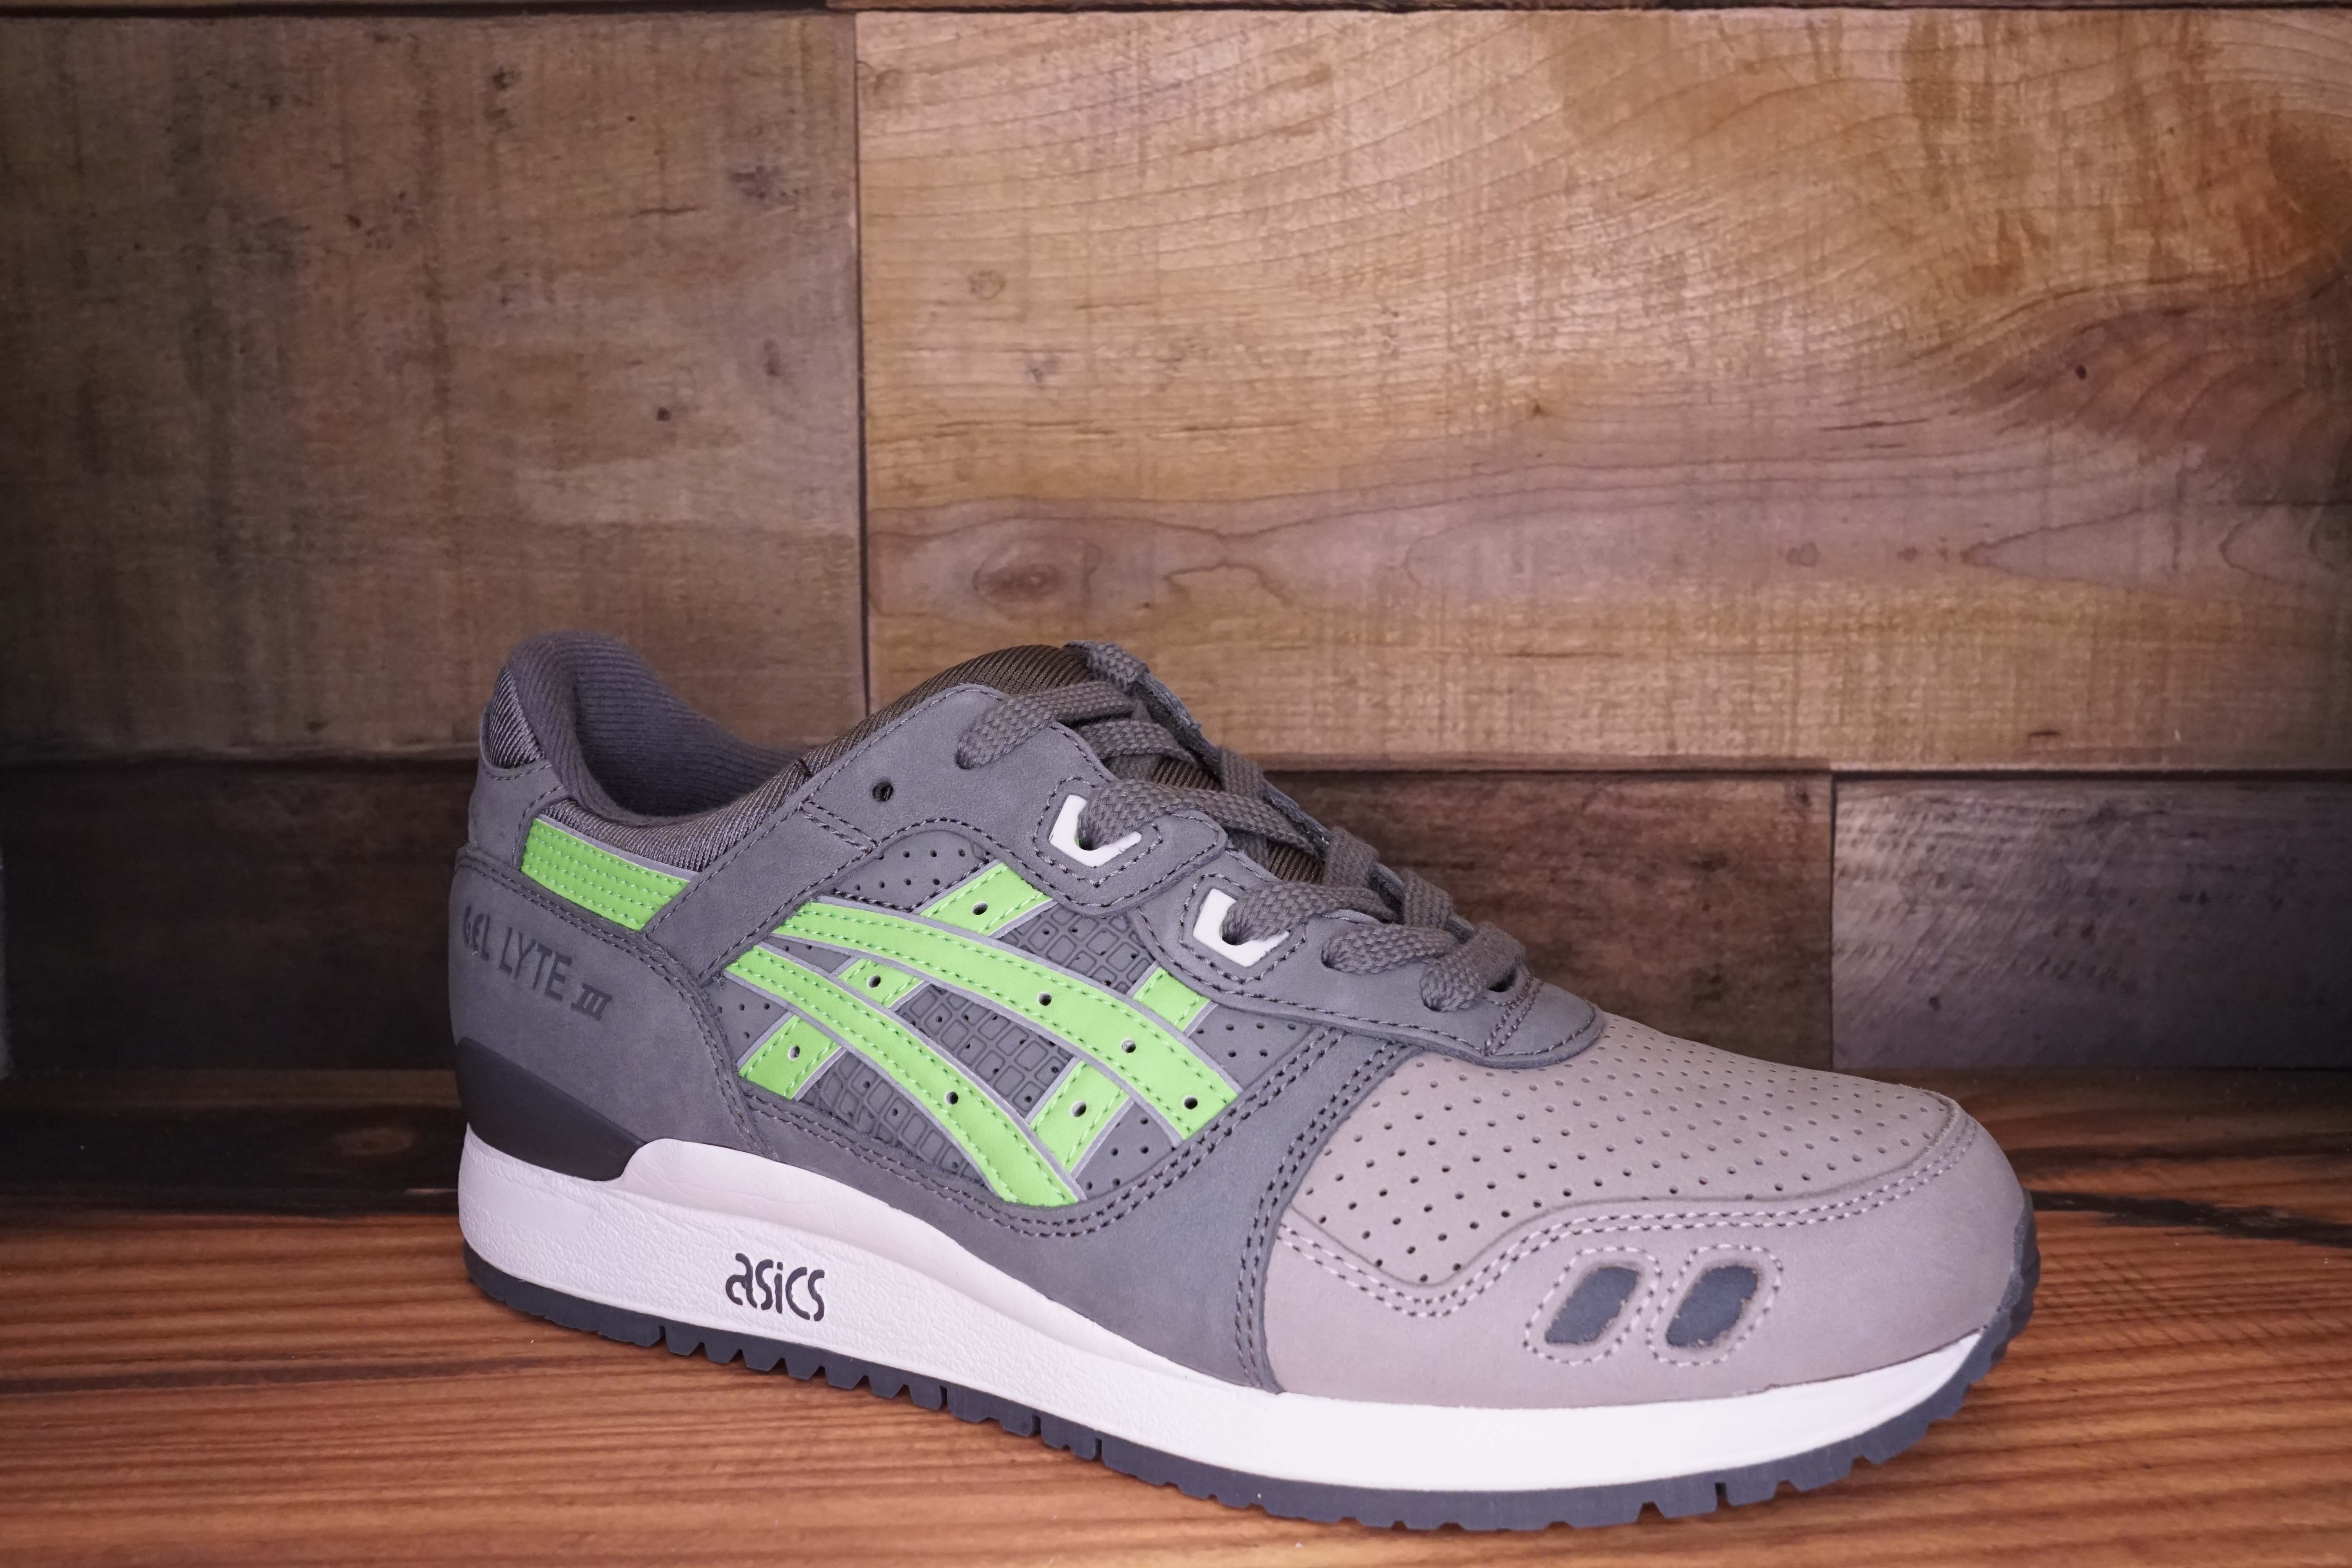 Asics-Gel-Lyte-3-SUPER-GREEN-2016-Size-10.5-New-with-Original-Box_2510B.jpg